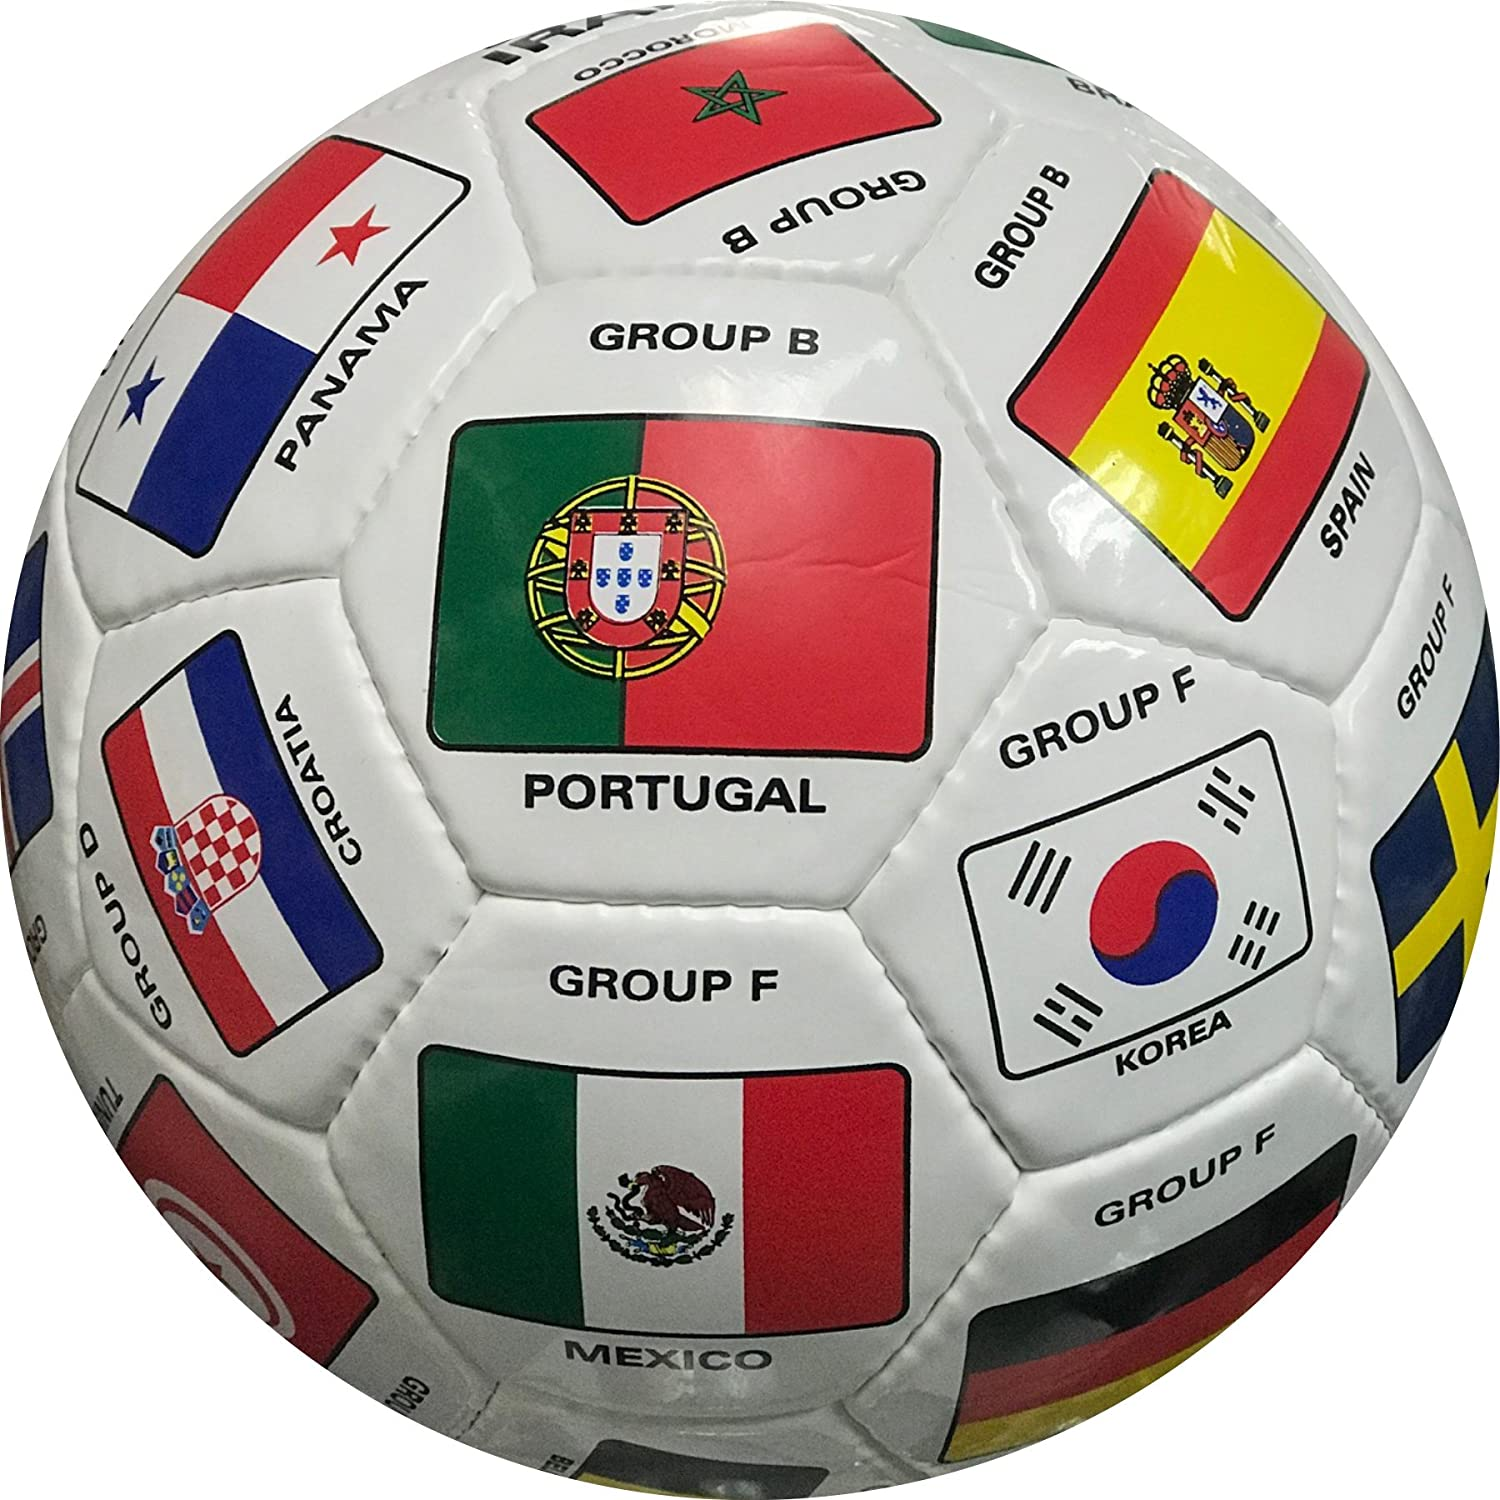 b5ad0655e Amazon.com : Country Flags Soccer Ball - Size 5 - Soccer Ball Decorated  with Famous Soccer Playing Country Flags - Great Soccer Gift - Unique Soccer  Ball ...